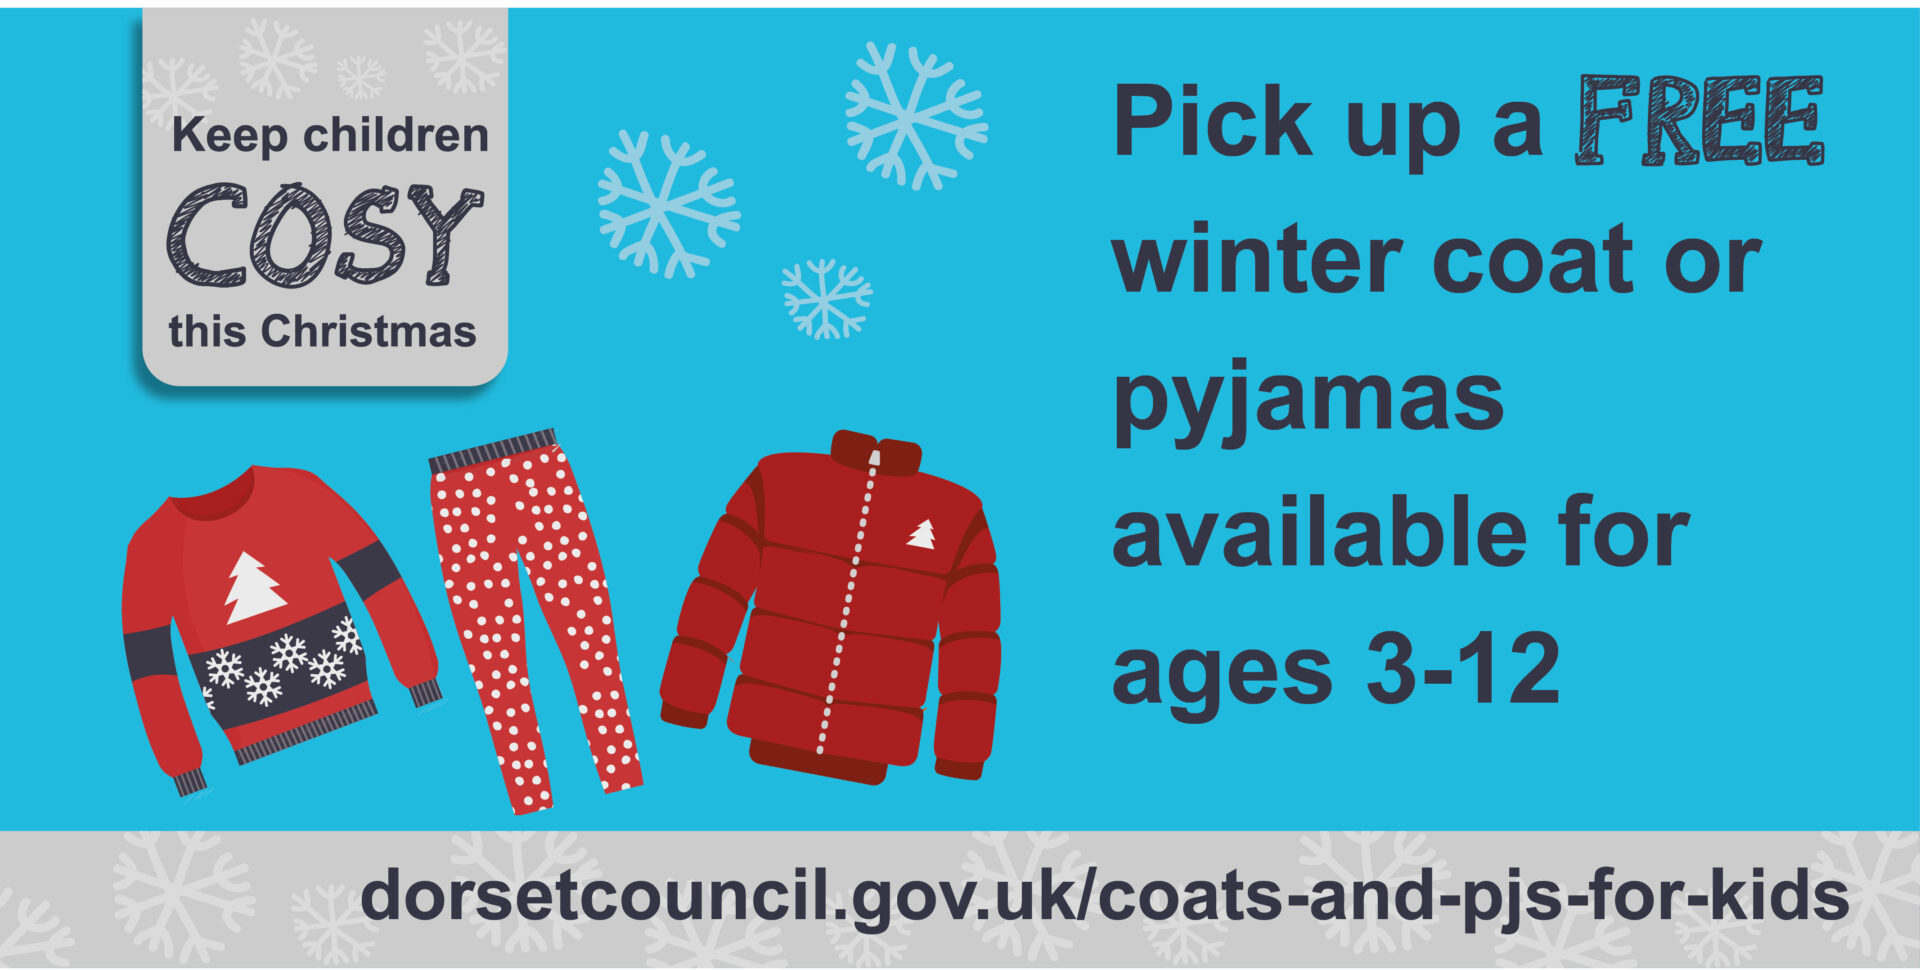 Pick-up free winter coats or pyjamas available for ages three to 12.